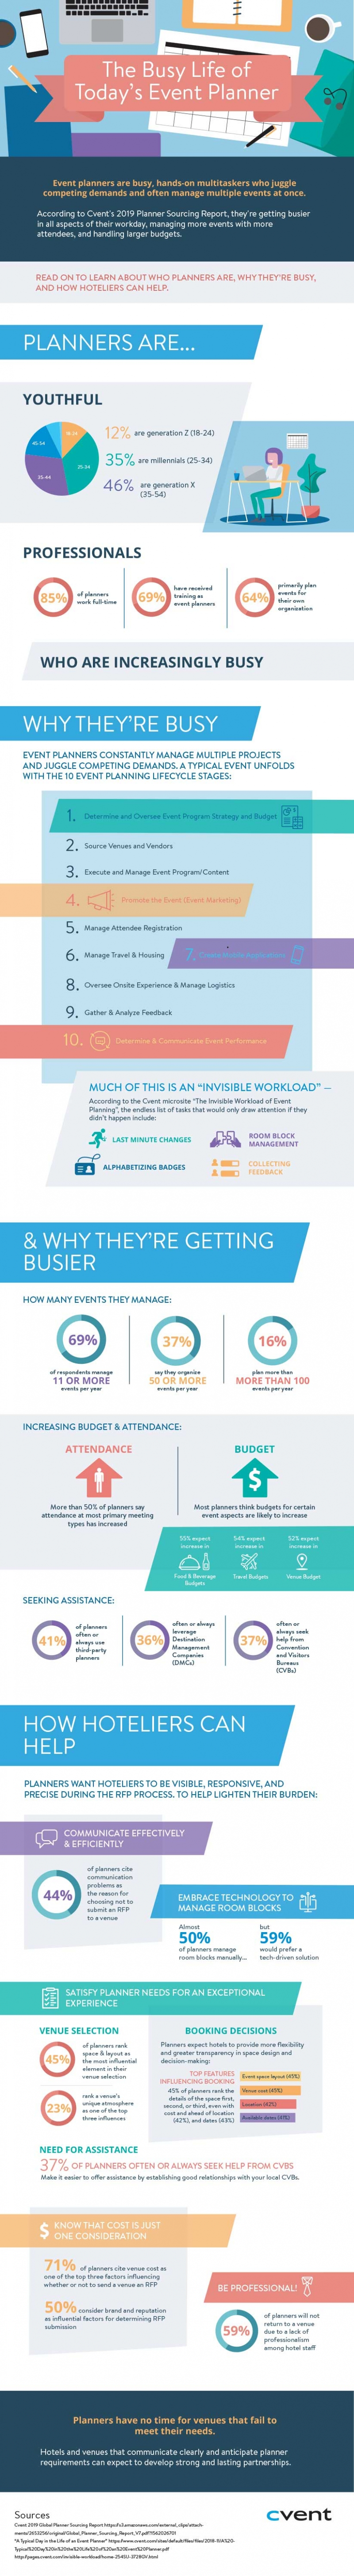 The Busy Life of Today's Event Planner Infographic